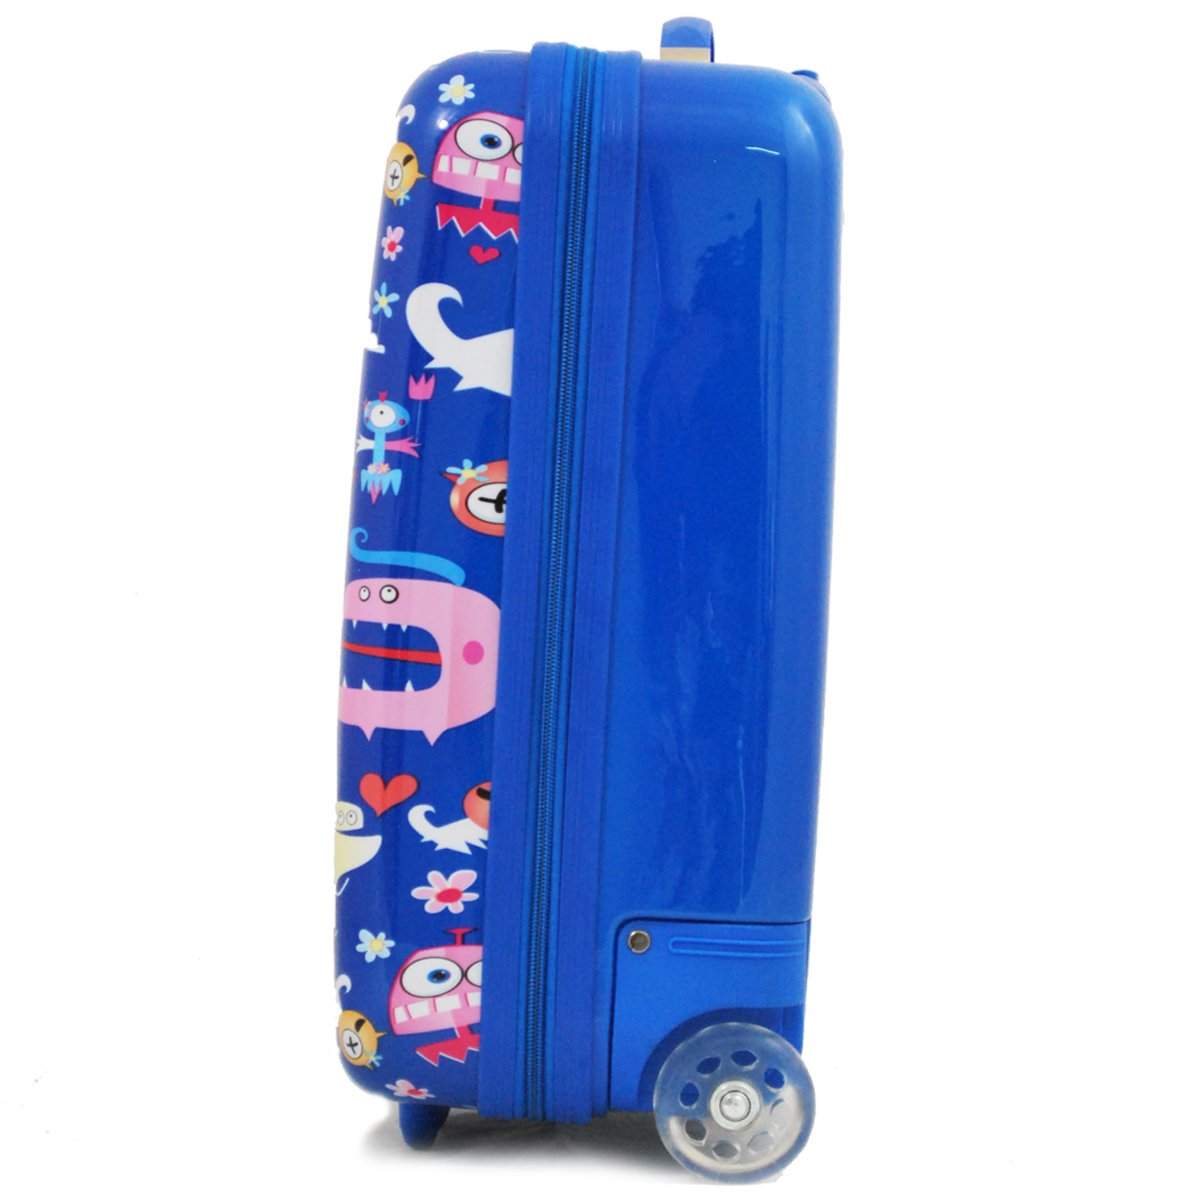 Valise cabine 2 roues MADISSON - Bleu